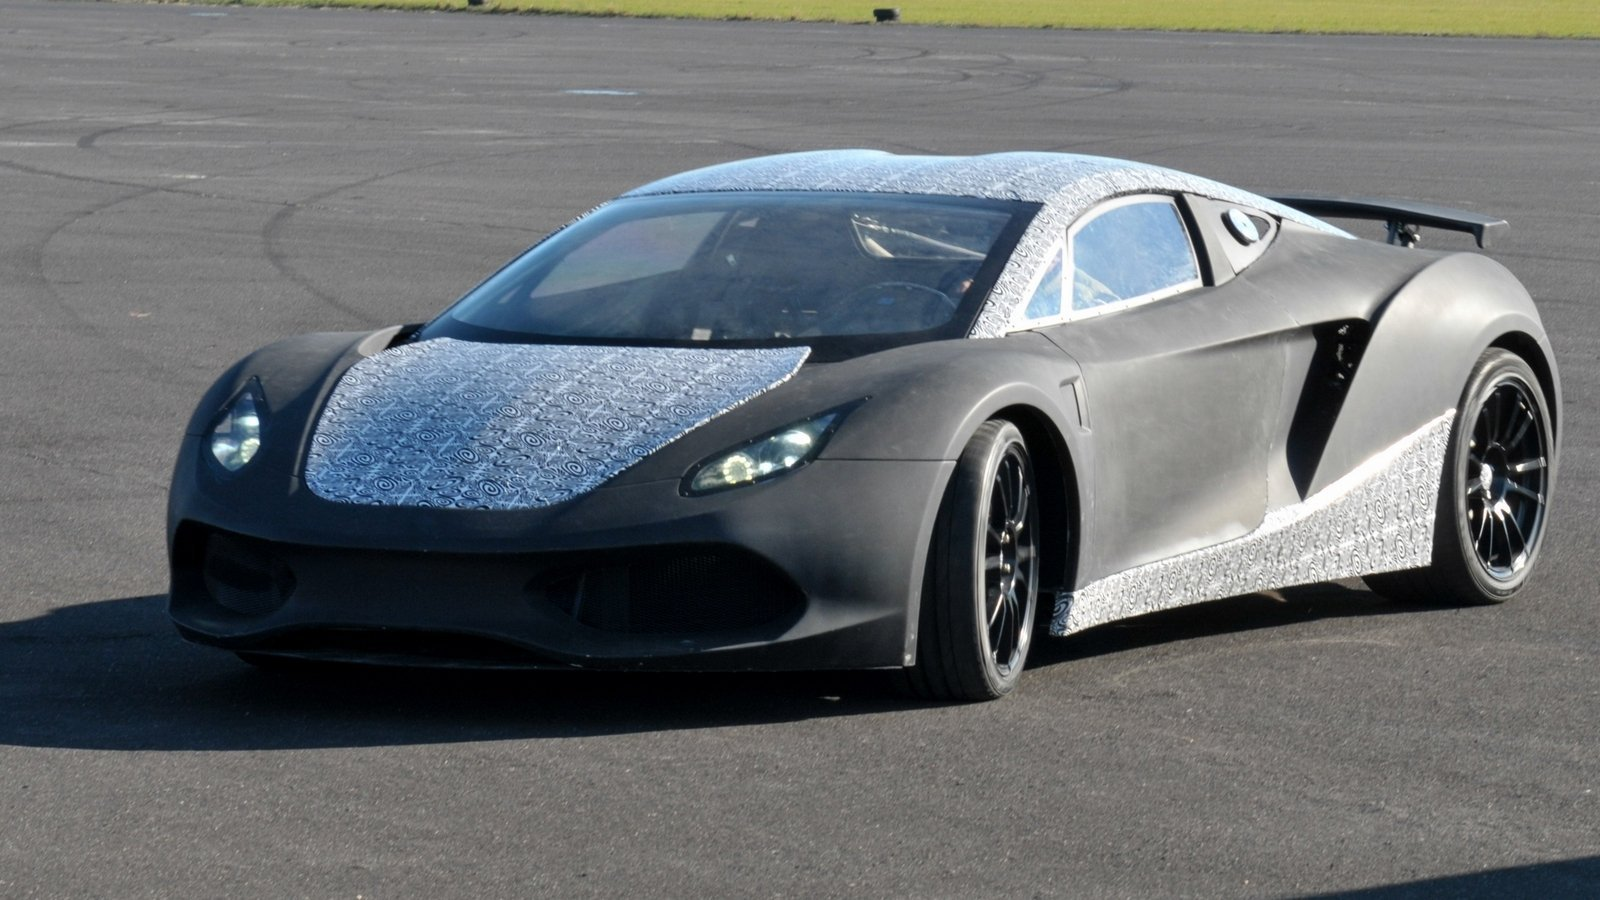 New 2014 Arrinera Hussarya Top Speed On This Month